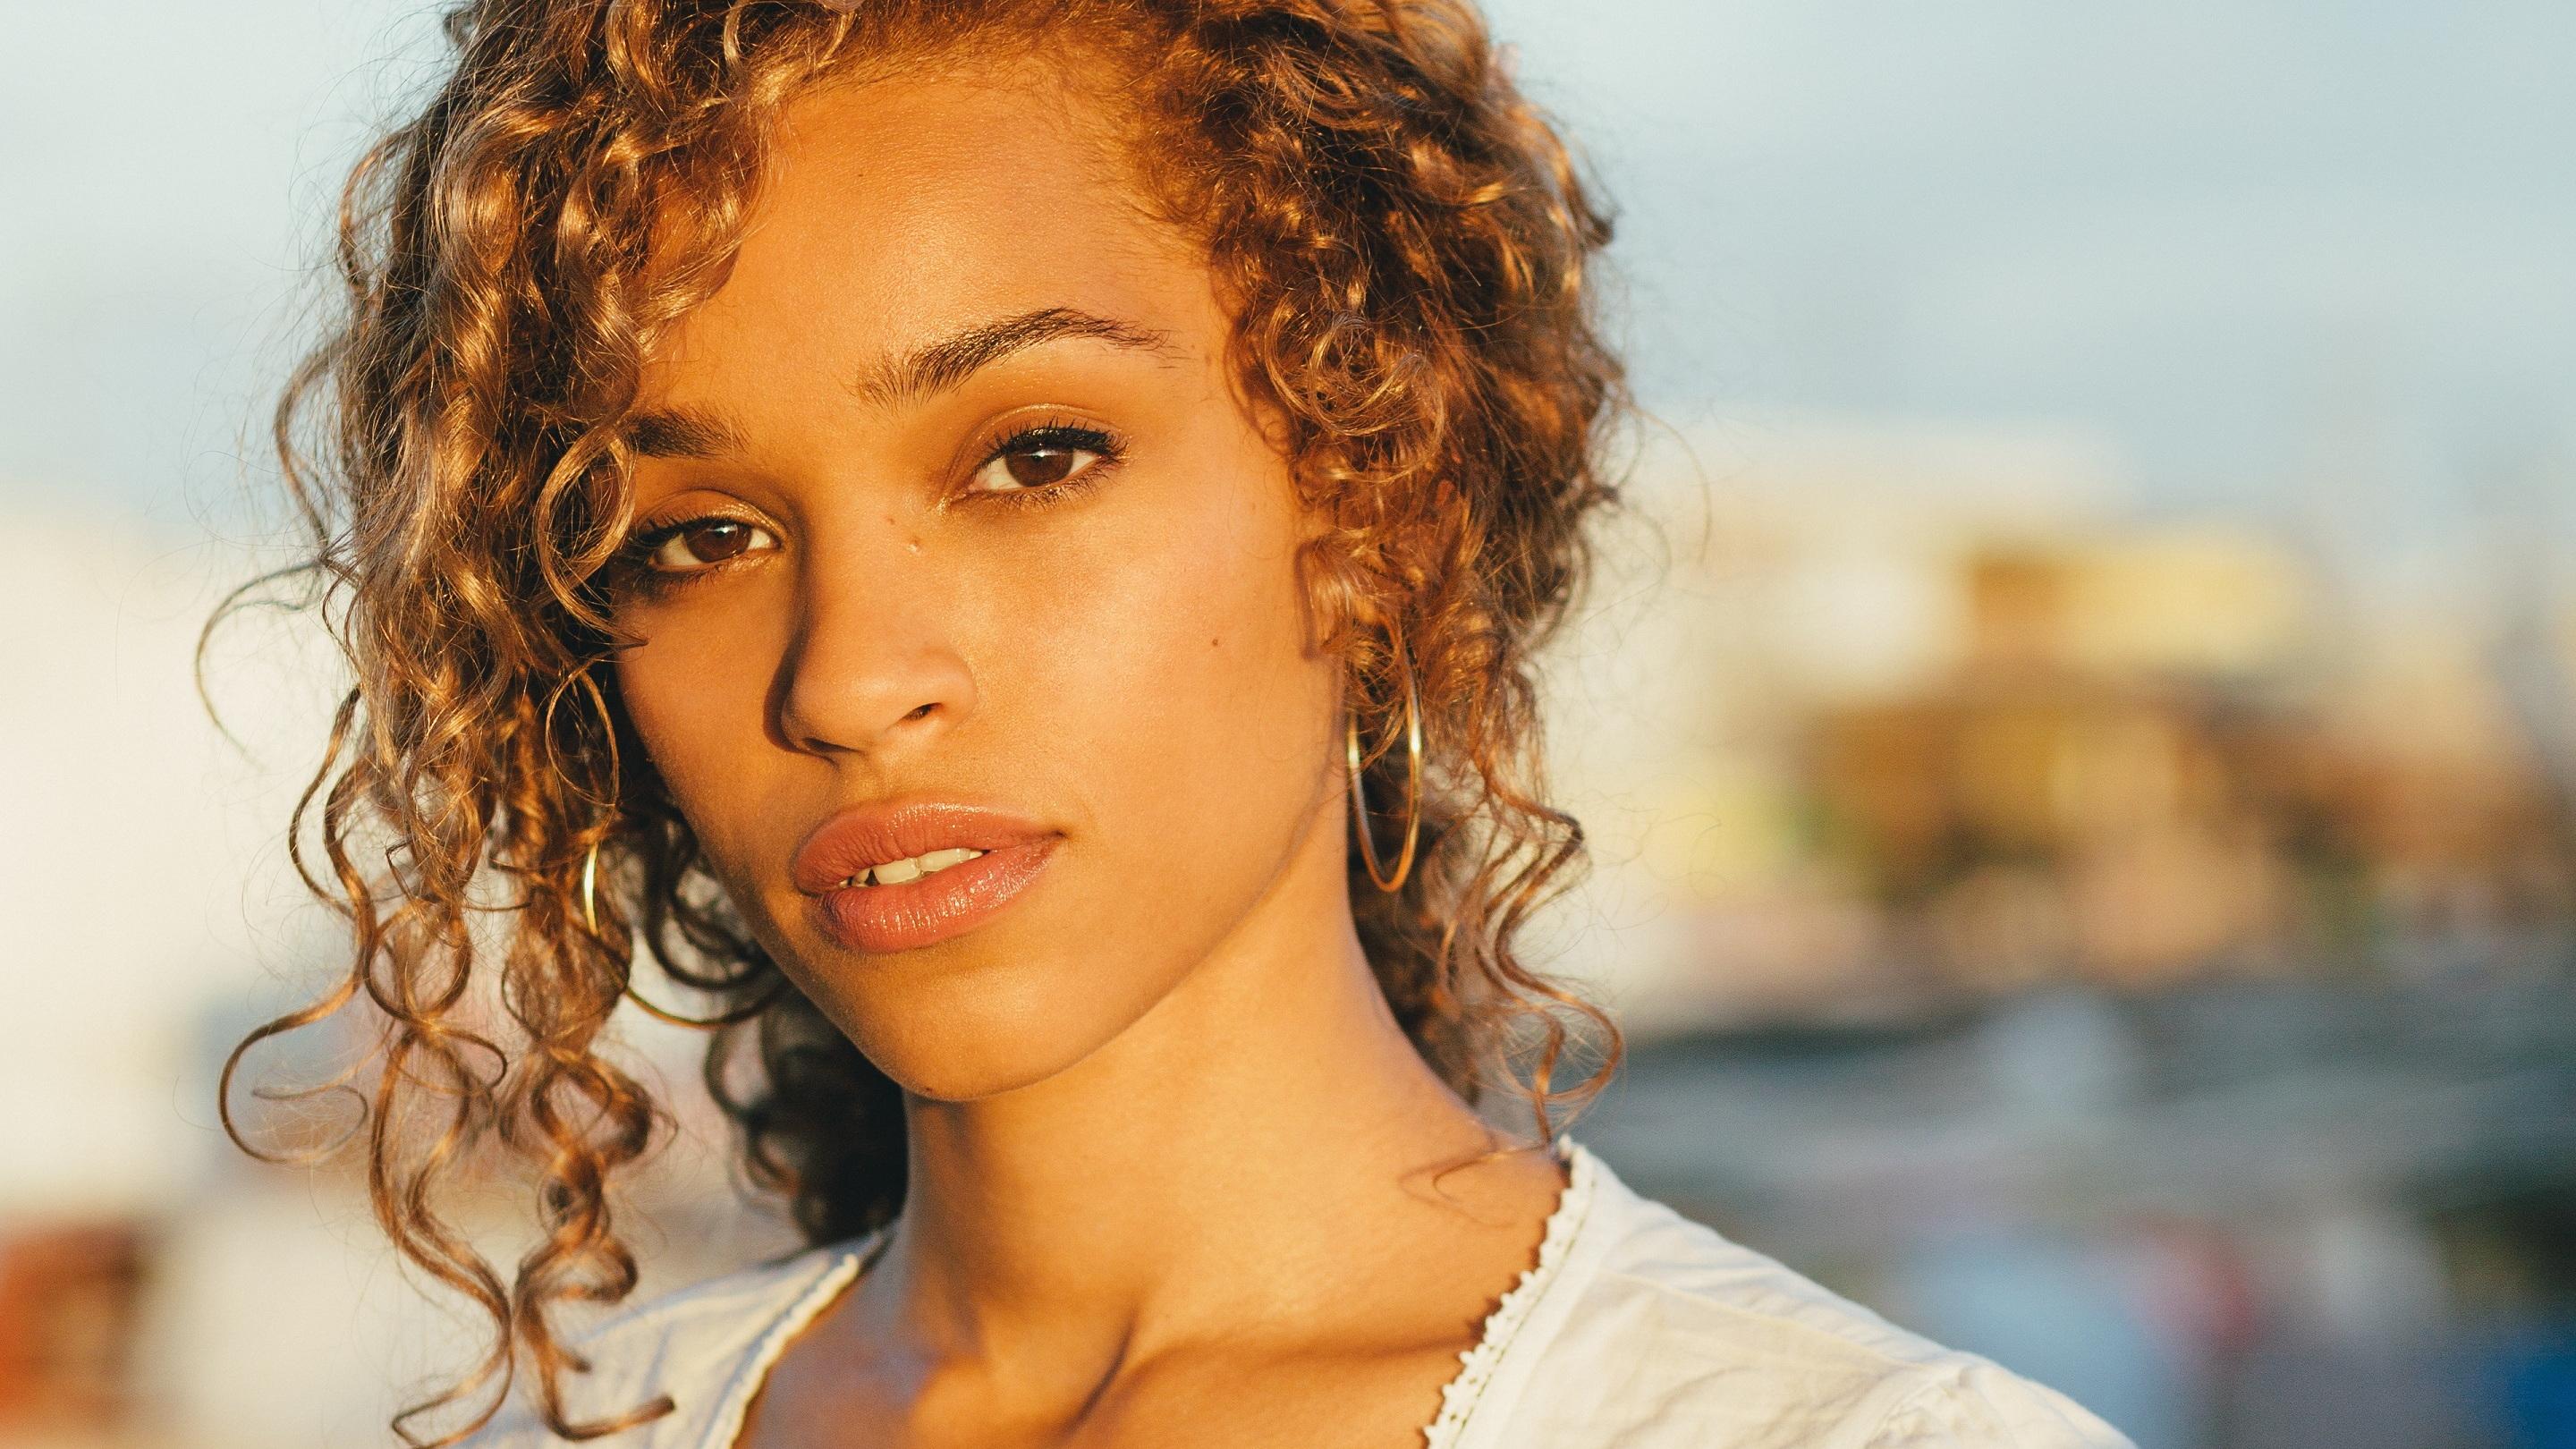 Izzy Bizu, press photo 2015 (2880x1620)